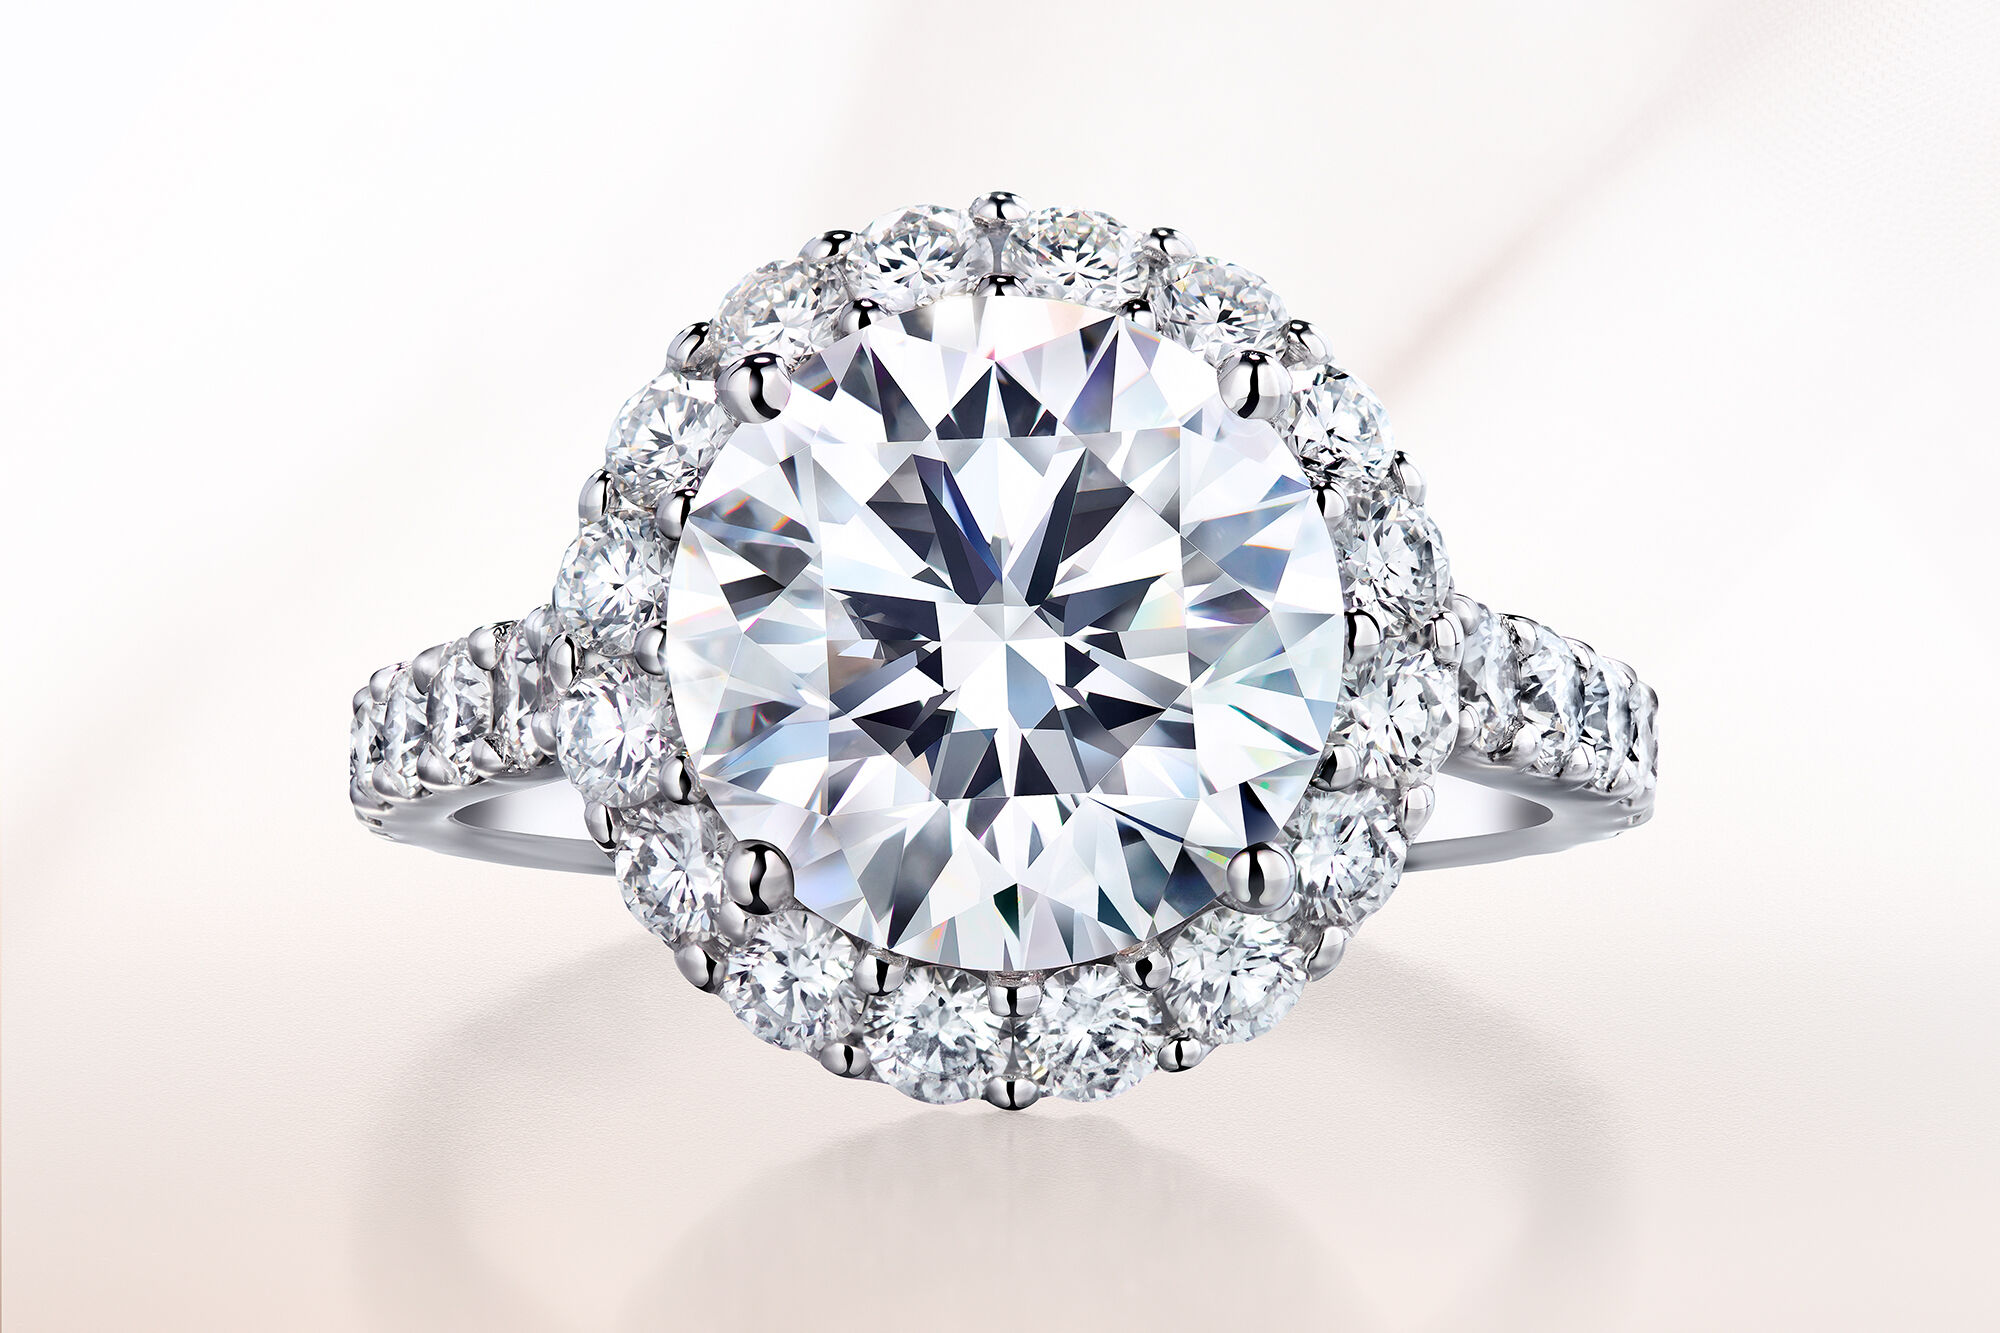 Close up of a round diamond Icon setting engagement ring by Graff